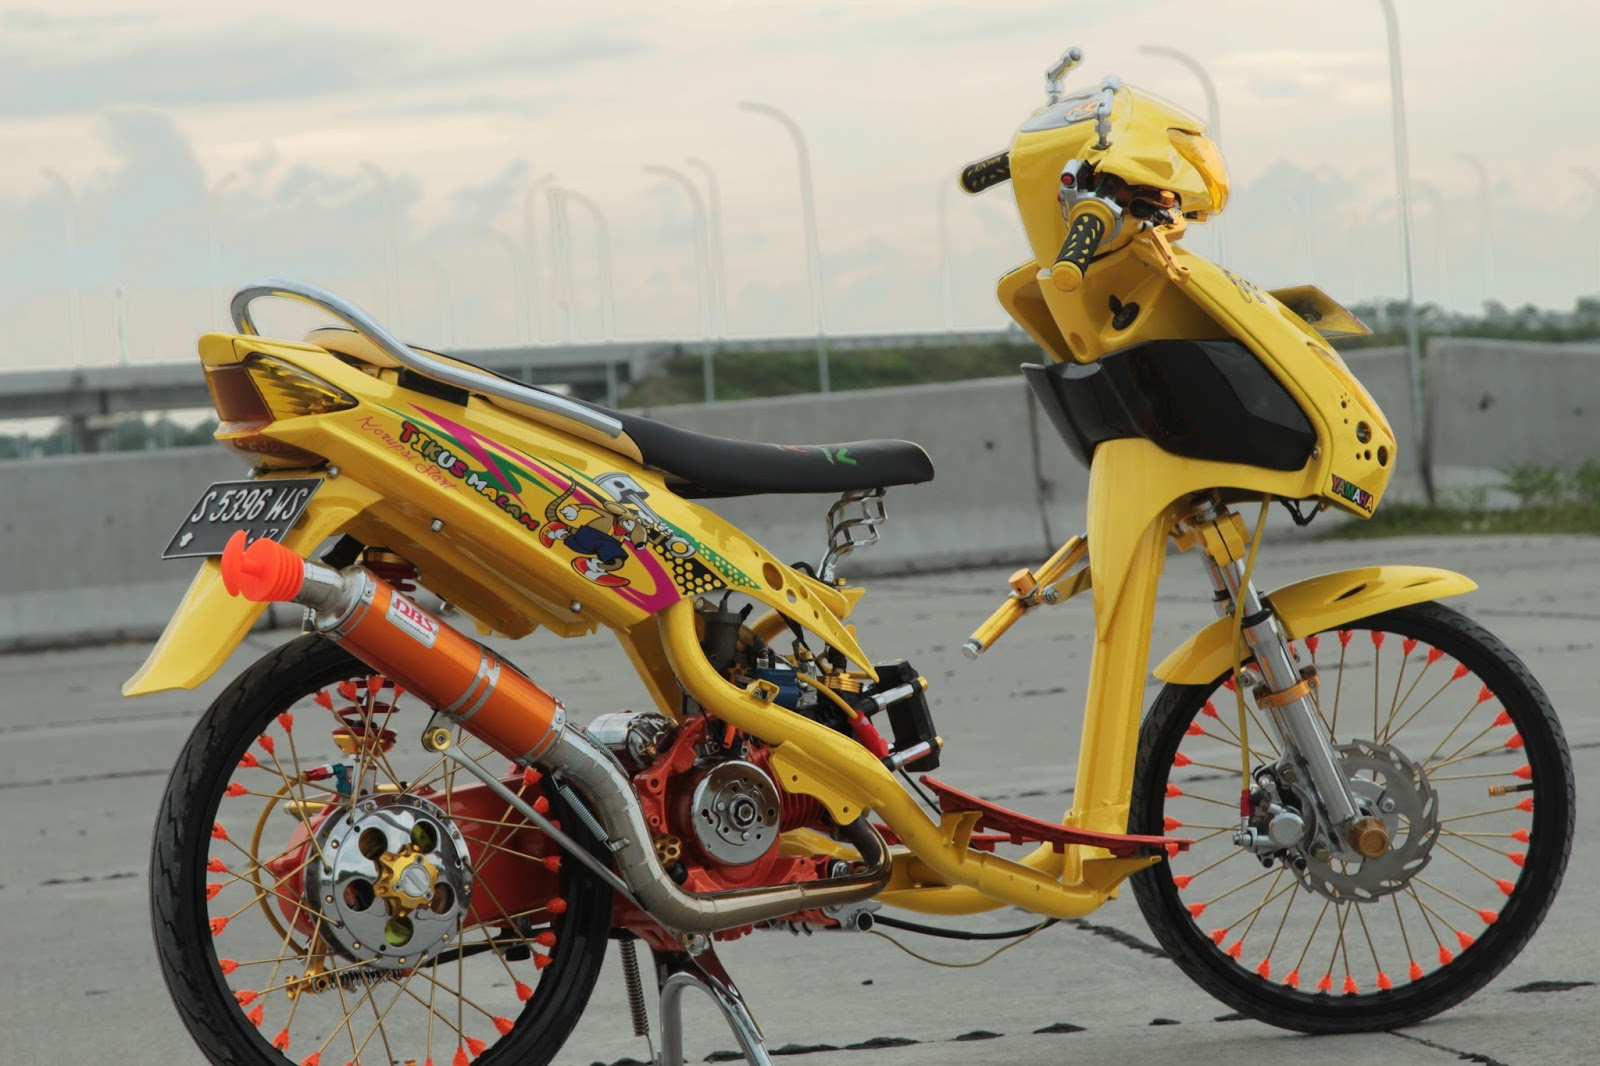 Modifikasi motor unik